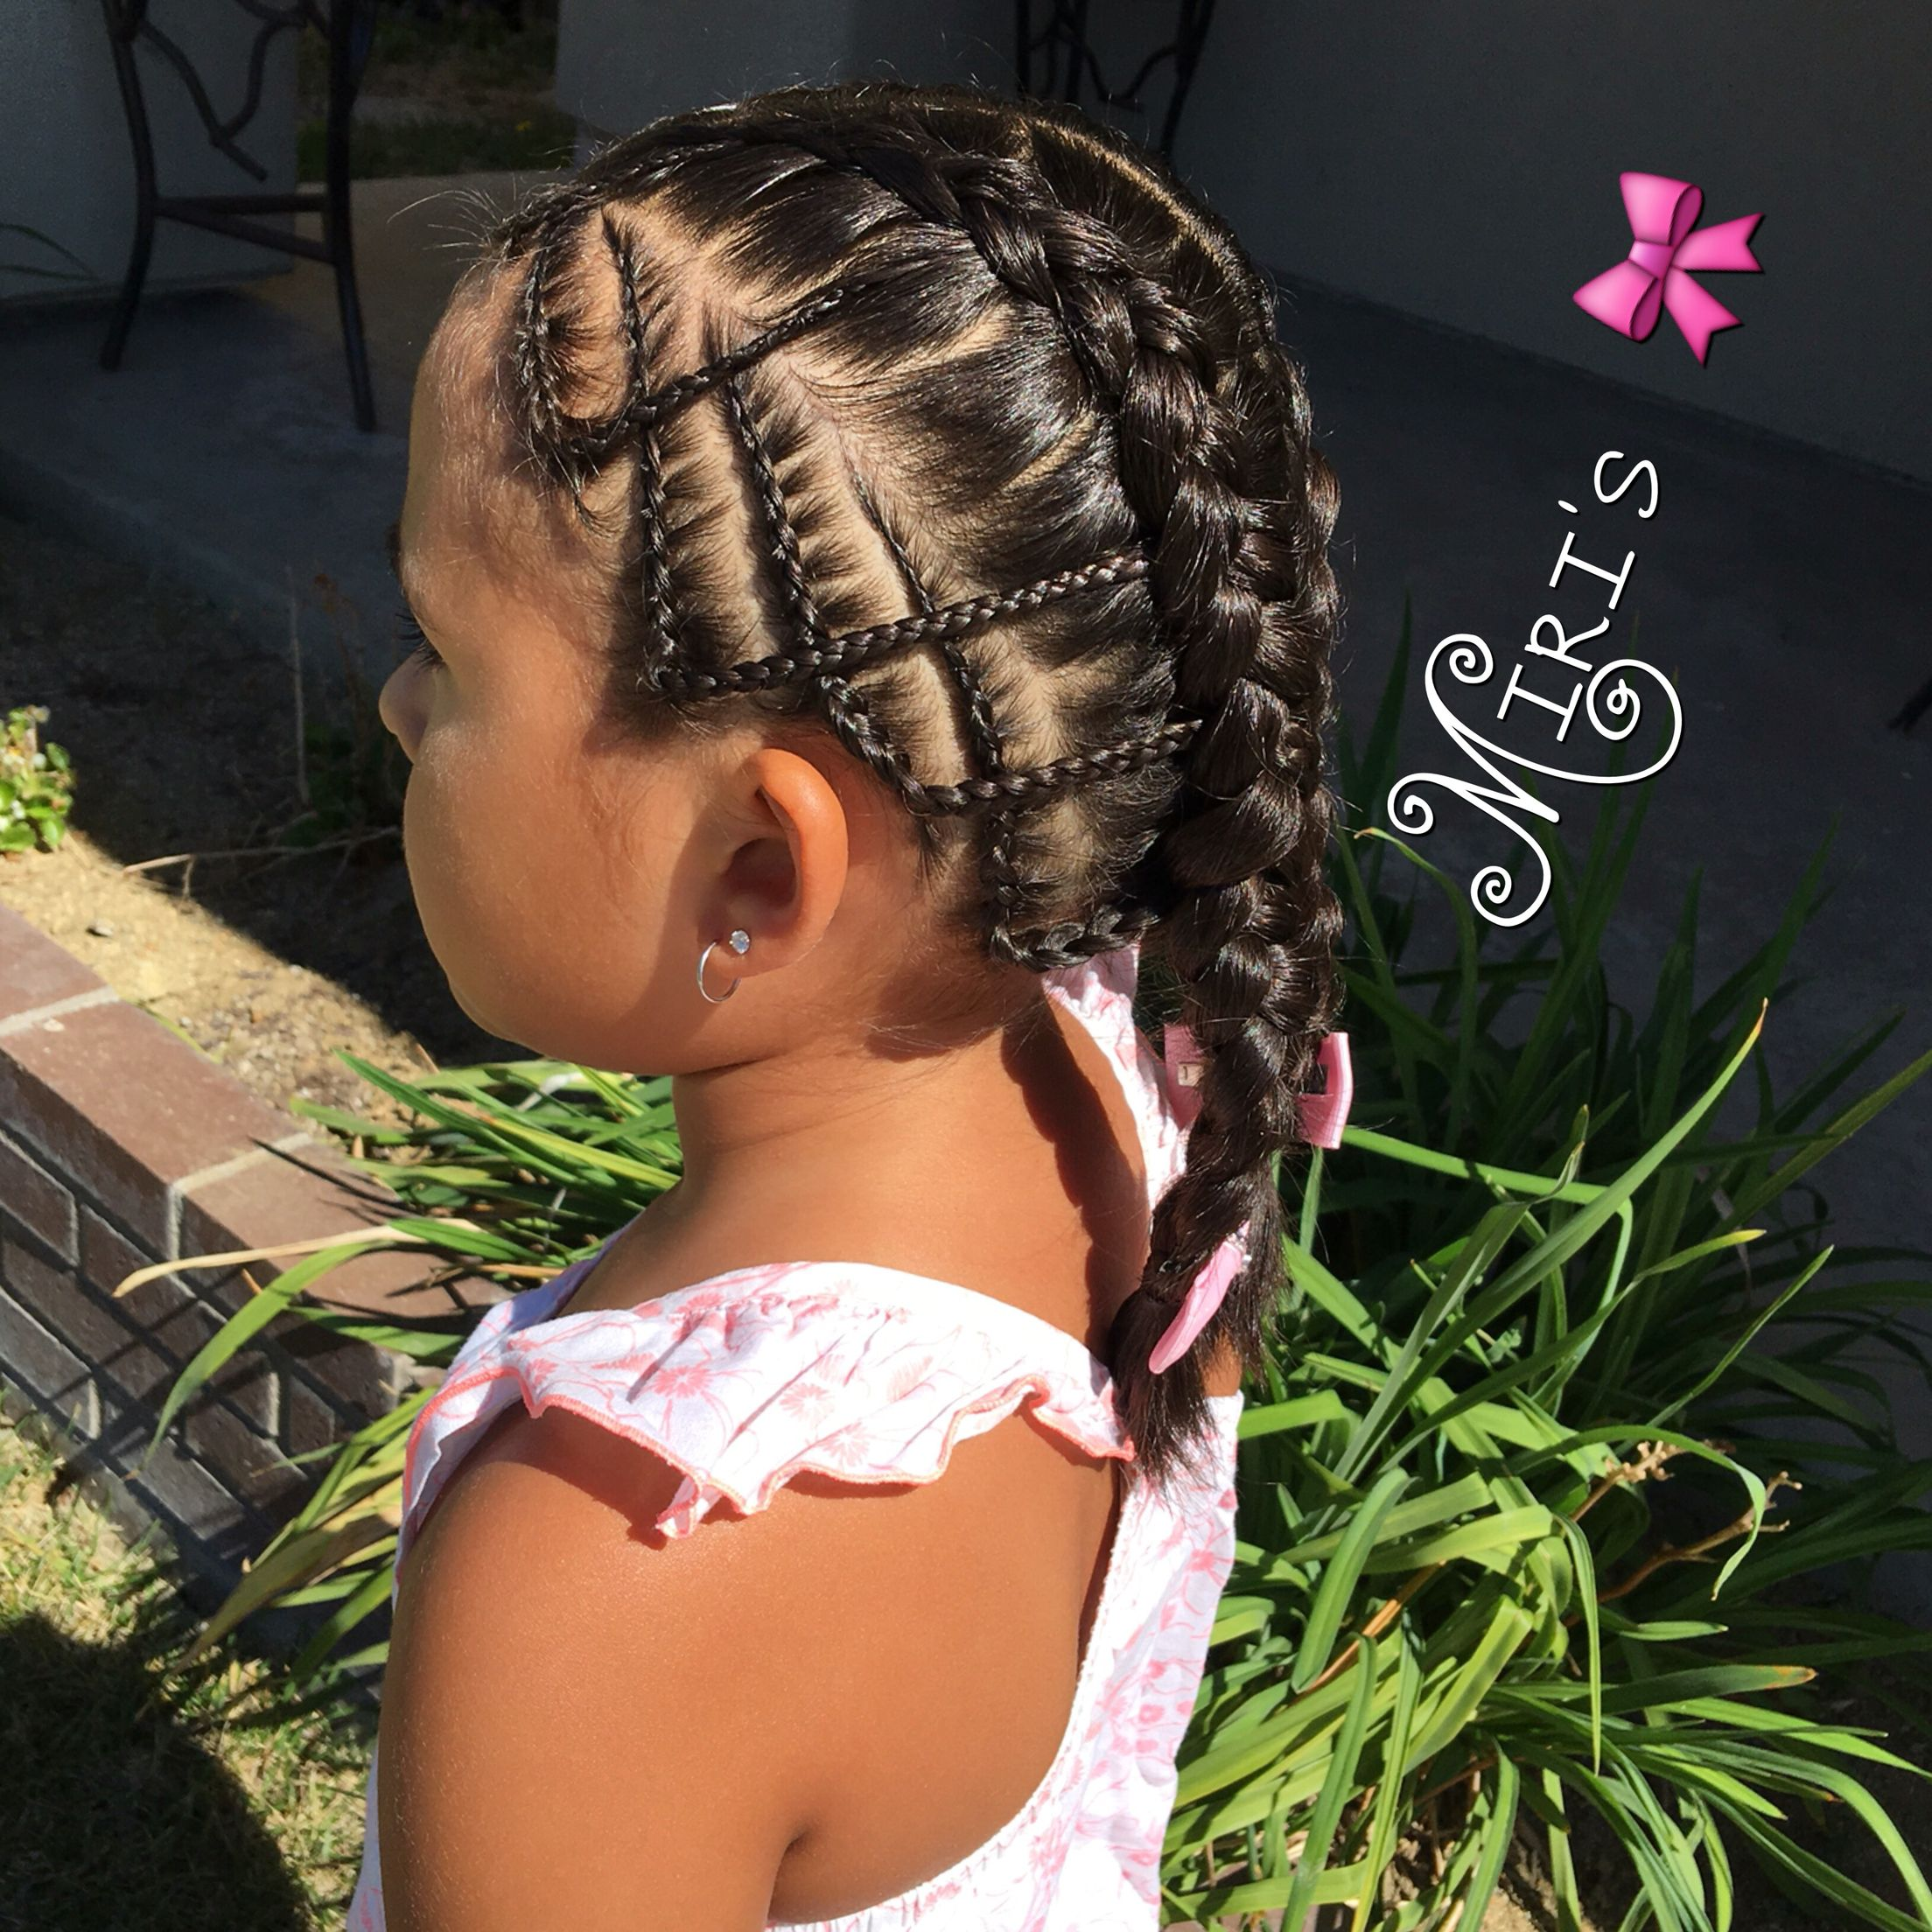 Hairstyles For Girls With Mixed Hair: Mixed Girl Hairstyles, Mixed